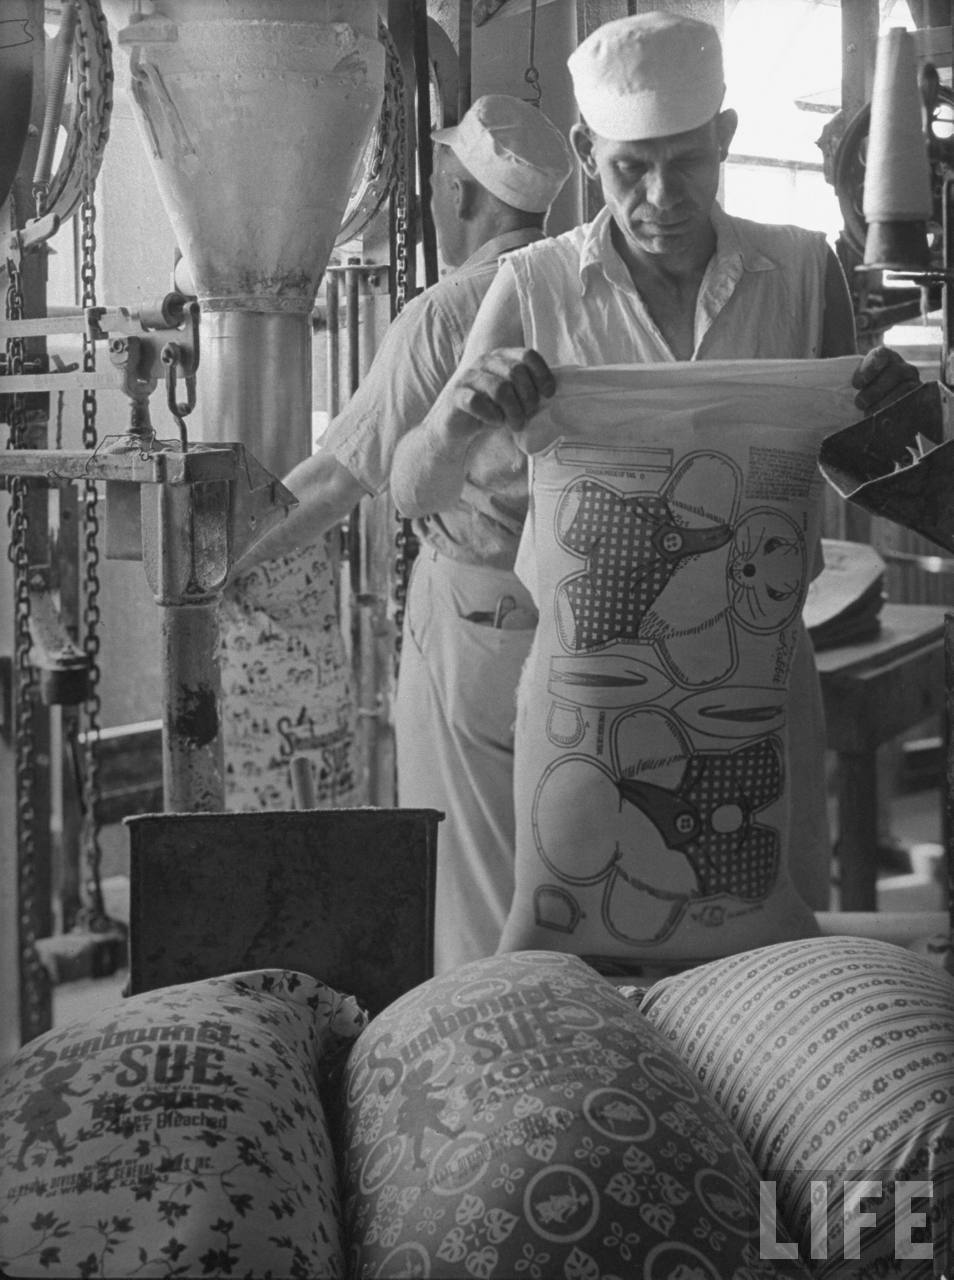 Workers filliing colorfully printed flour sacks which housewives use to make dresses because the labels wash out, at Sunbonnet Sue flour mill.